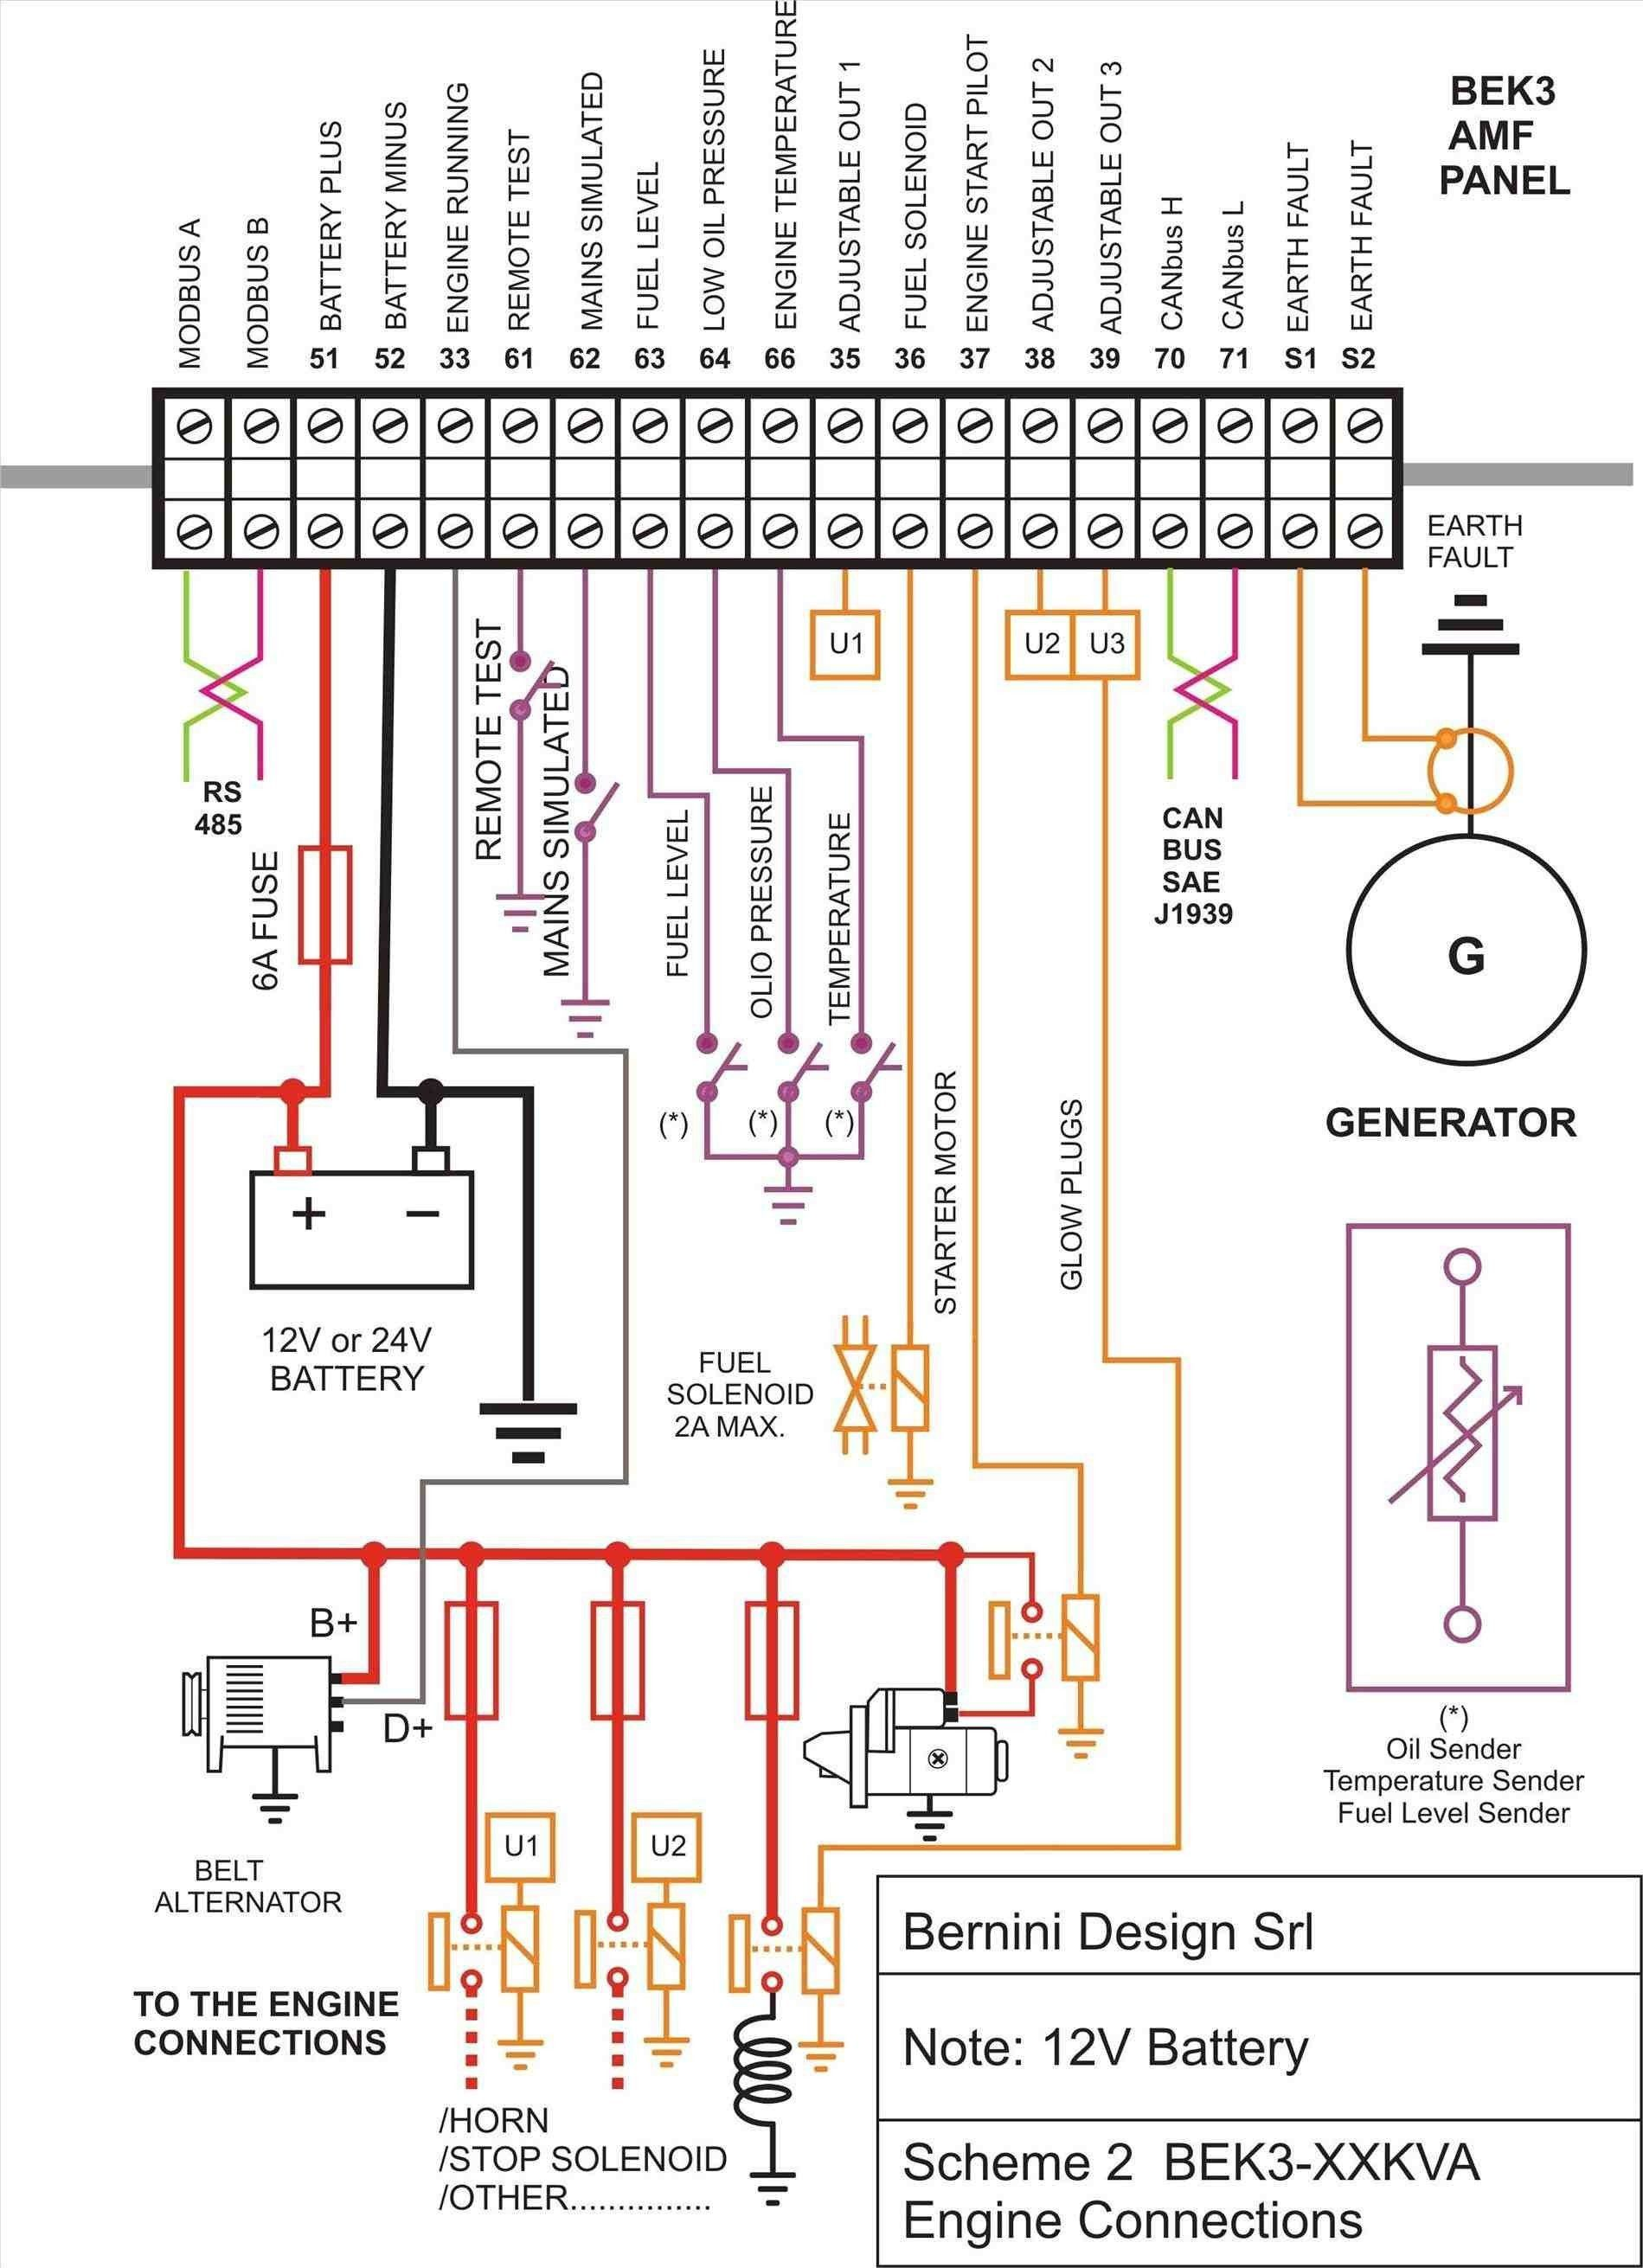 3 Phase Wiring Diagram For House Http Bookingritzcarlton Info 3 Phase Wiring Diagram Fo Electrical Wiring Diagram Electrical Circuit Diagram Circuit Diagram